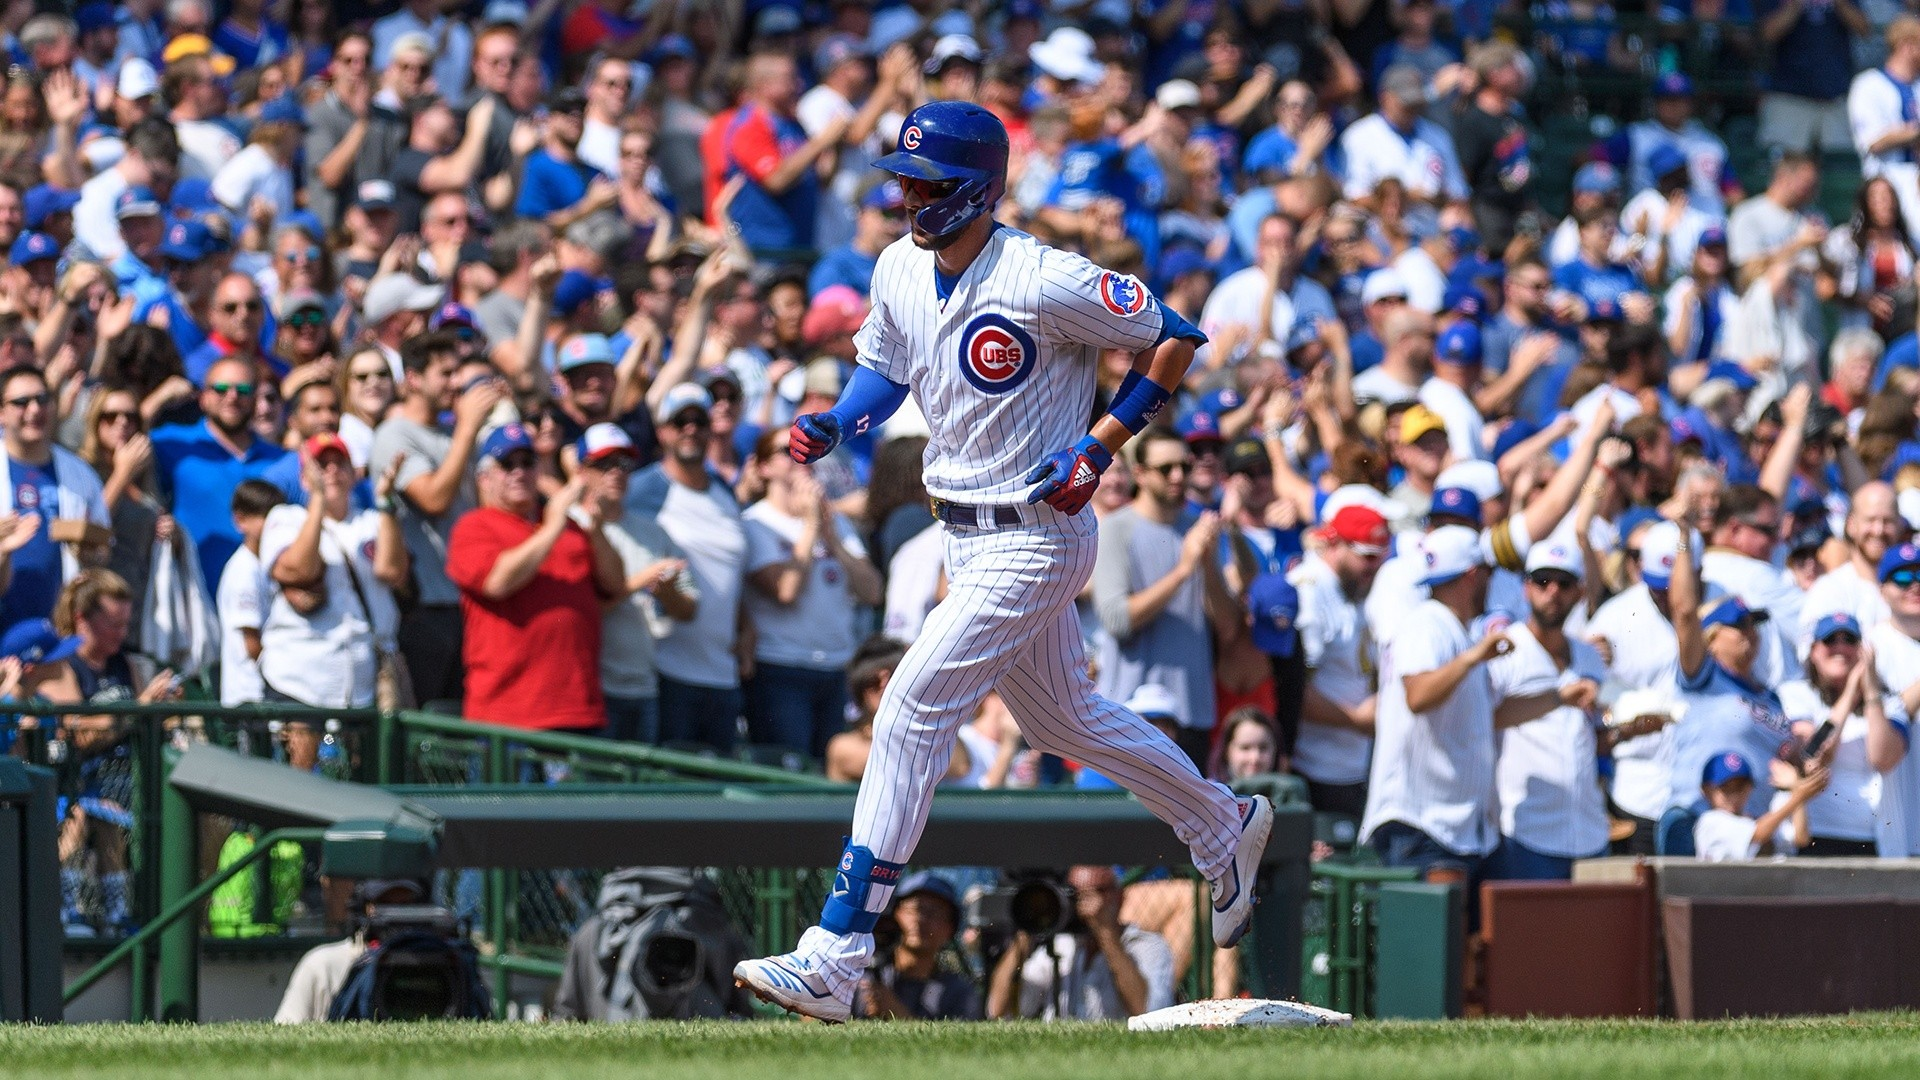 Kris Bryant hits his 2nd home run of Sunday against Pirates